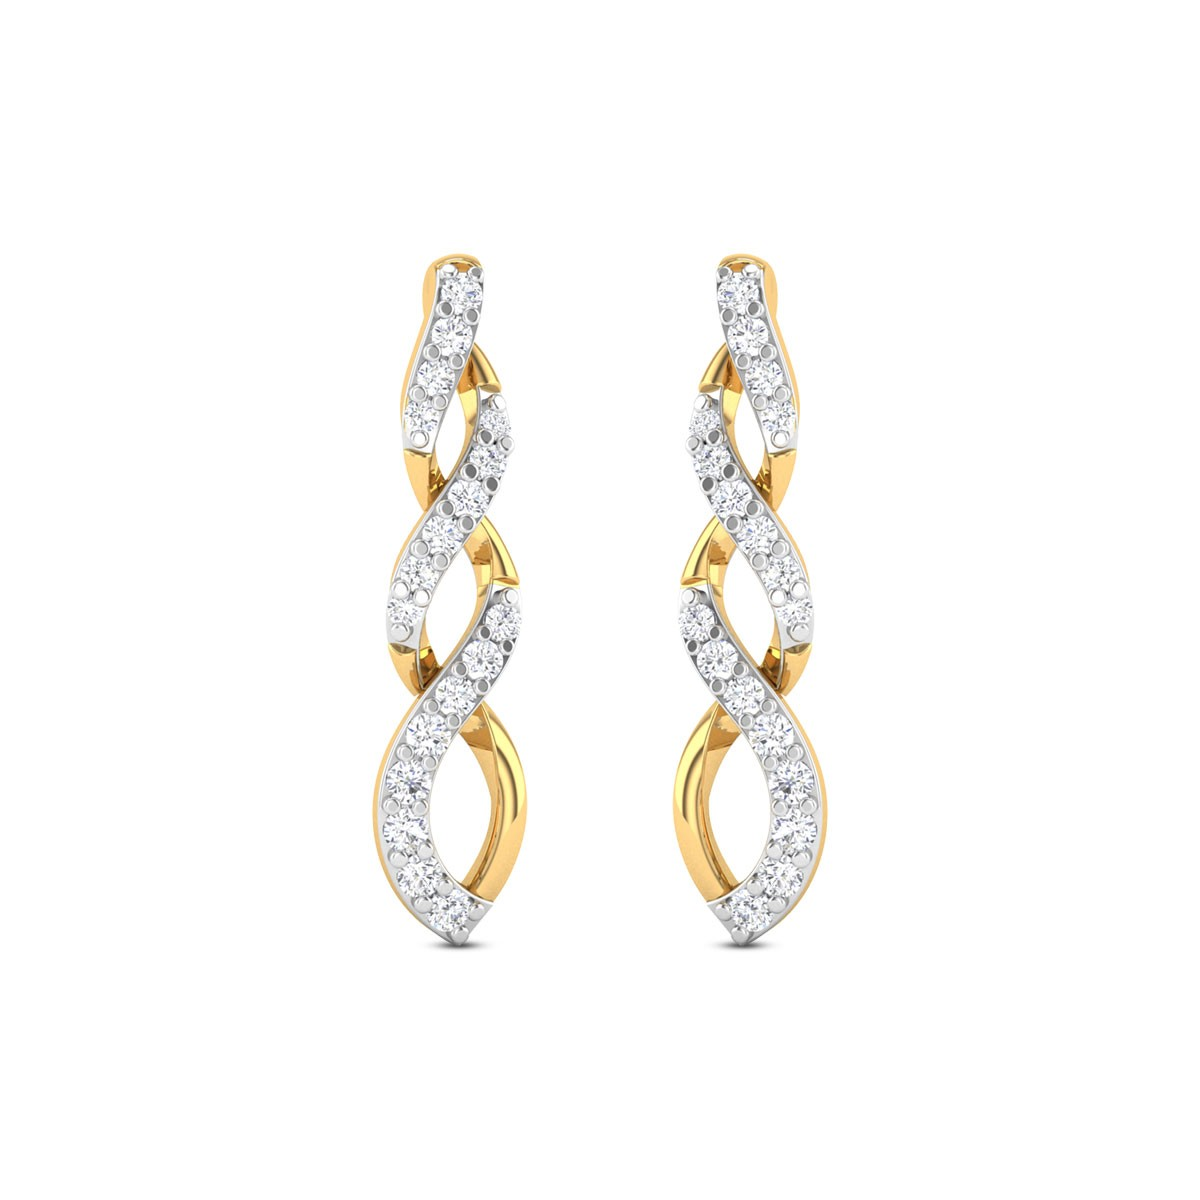 Amvi Diamond Earrings